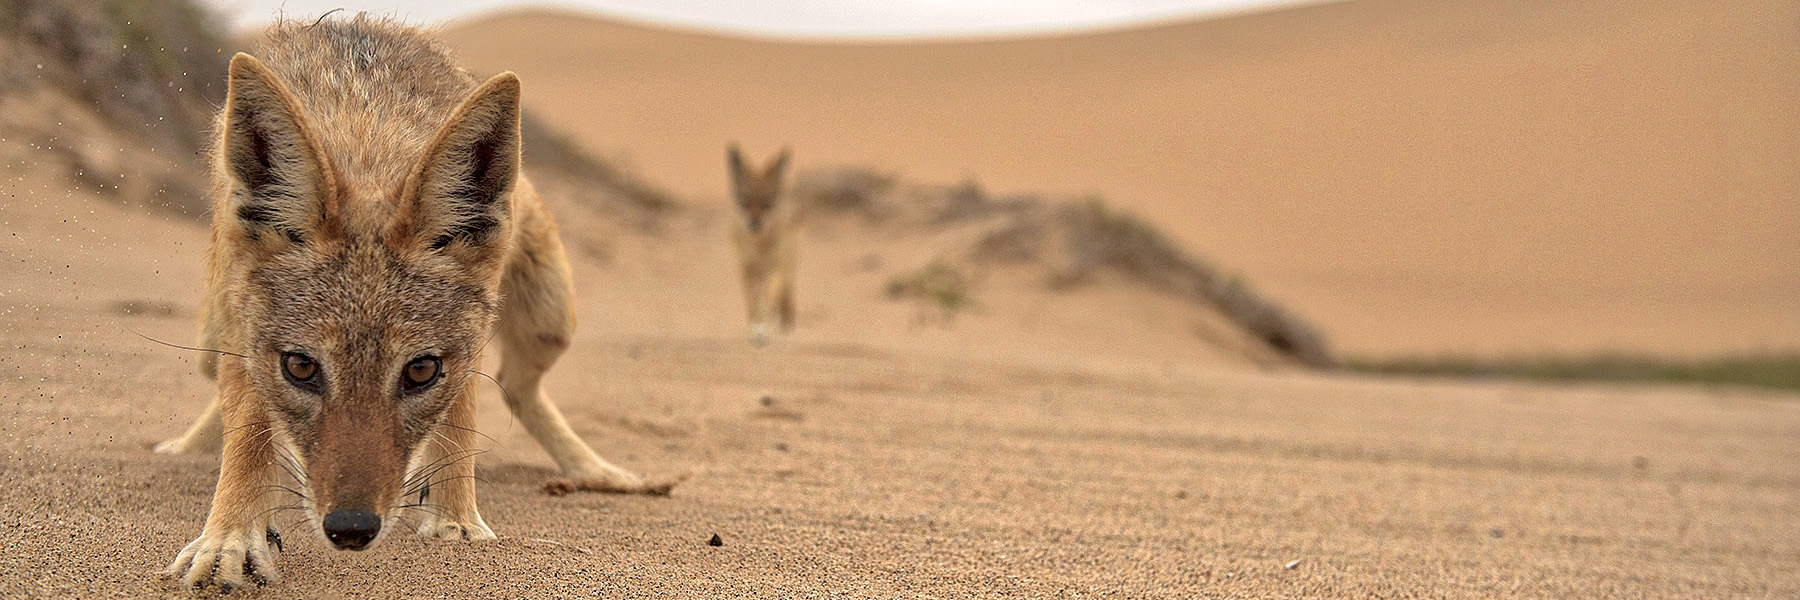 Discovery of Namibia